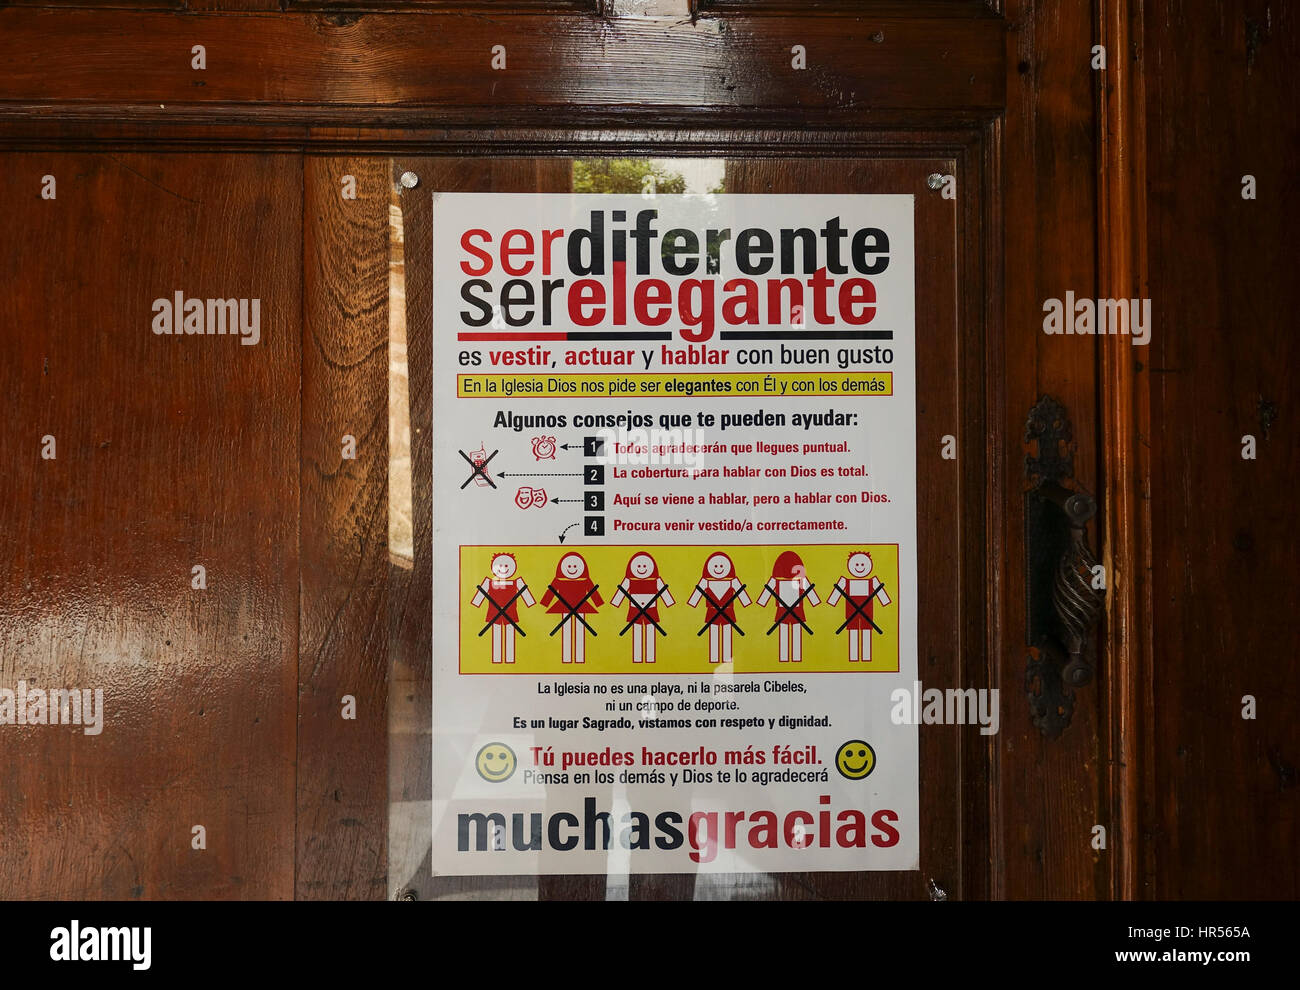 Sign at entrance spanish church, advising dress code and Church etiquette, Marbella, Spain. - Stock Image